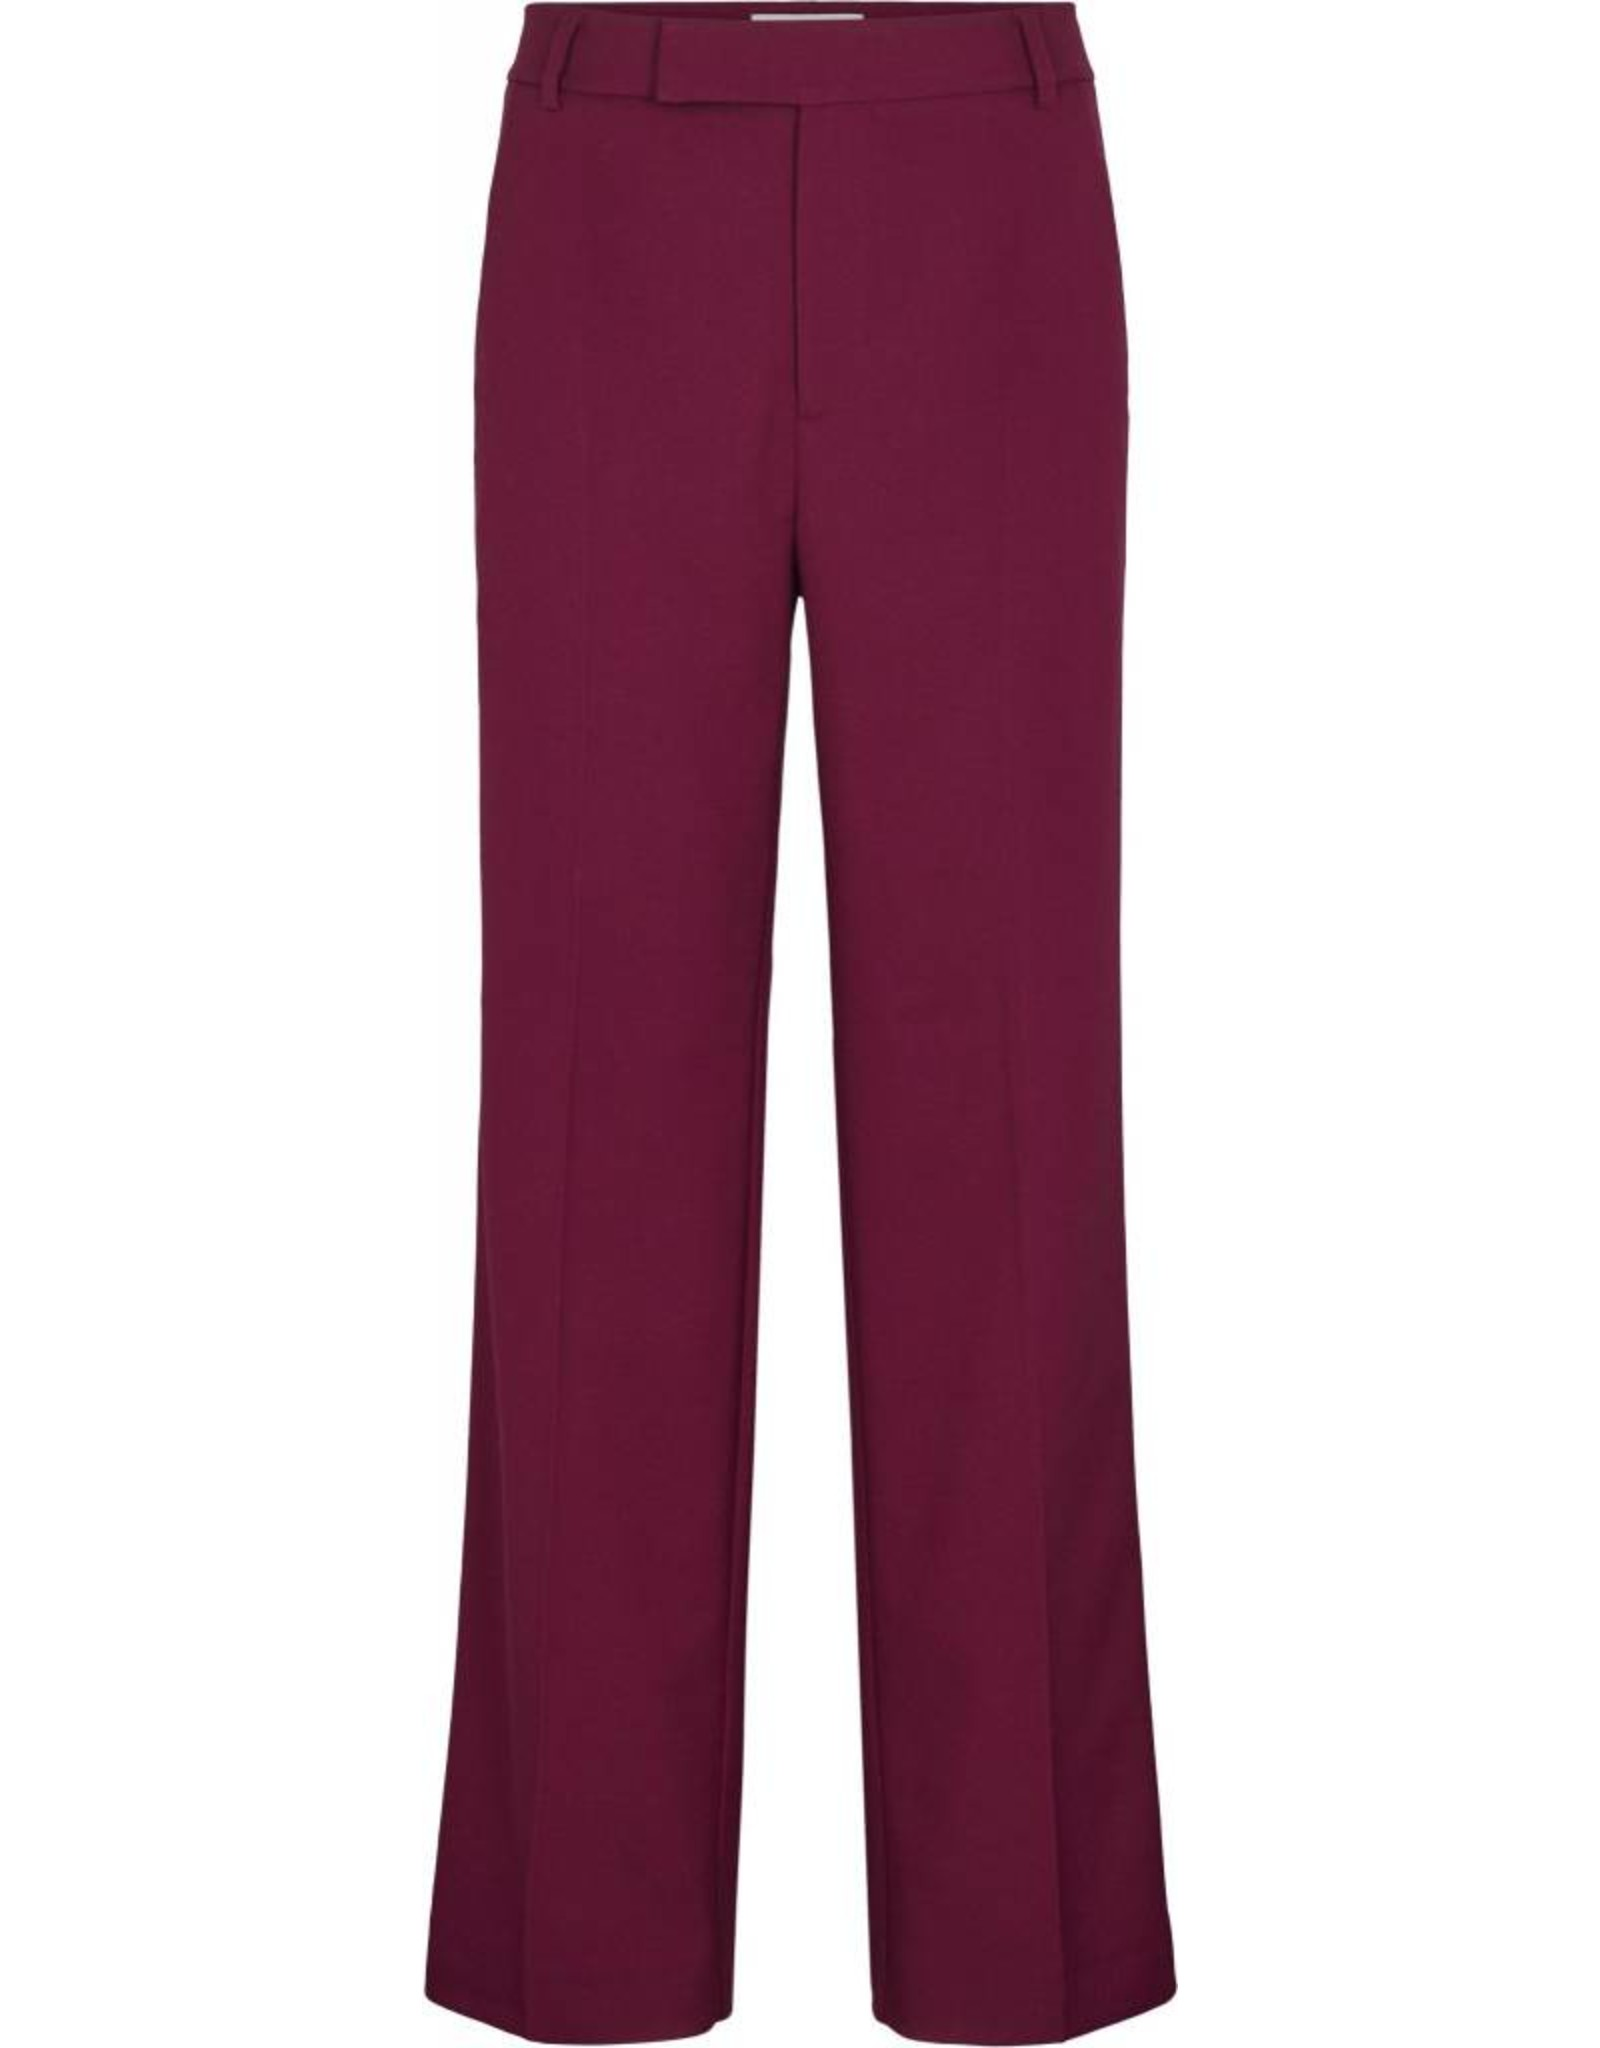 JUST FEMALE TROUSERS MAX